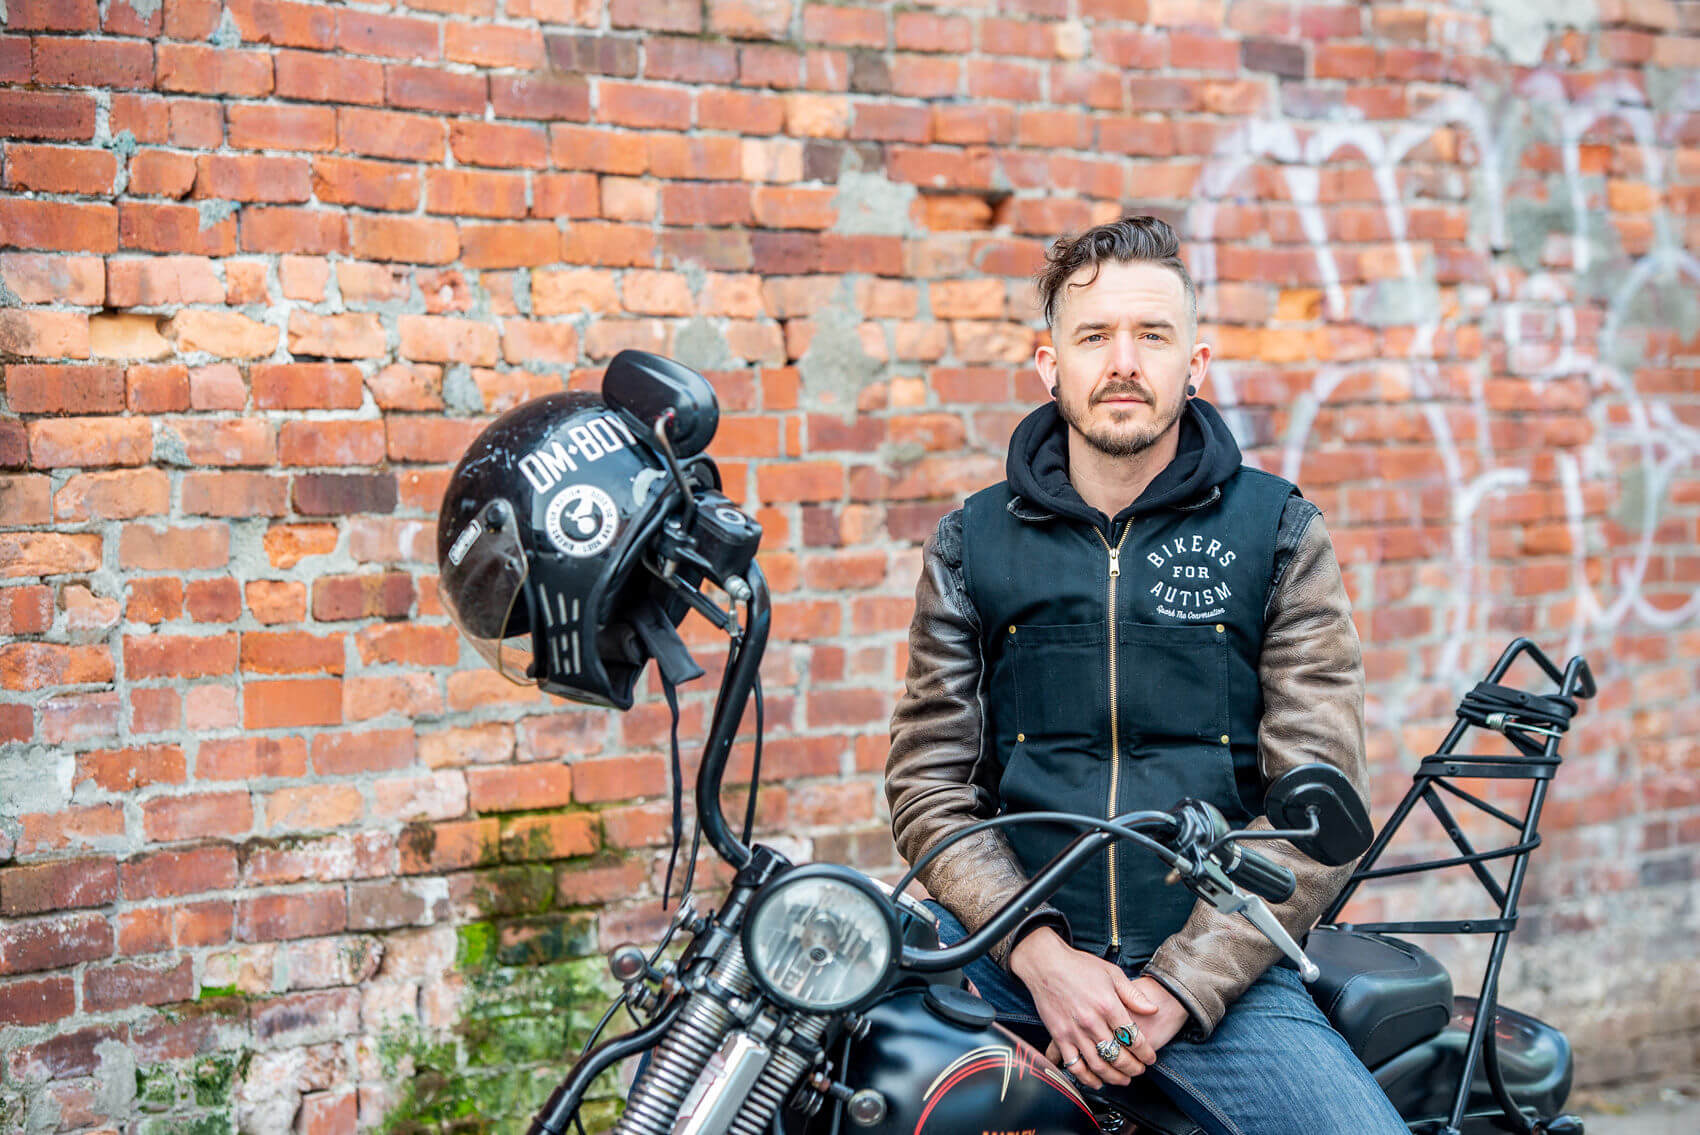 Tough Duck Brand Ambassador James Baker sitting on a motorcycle